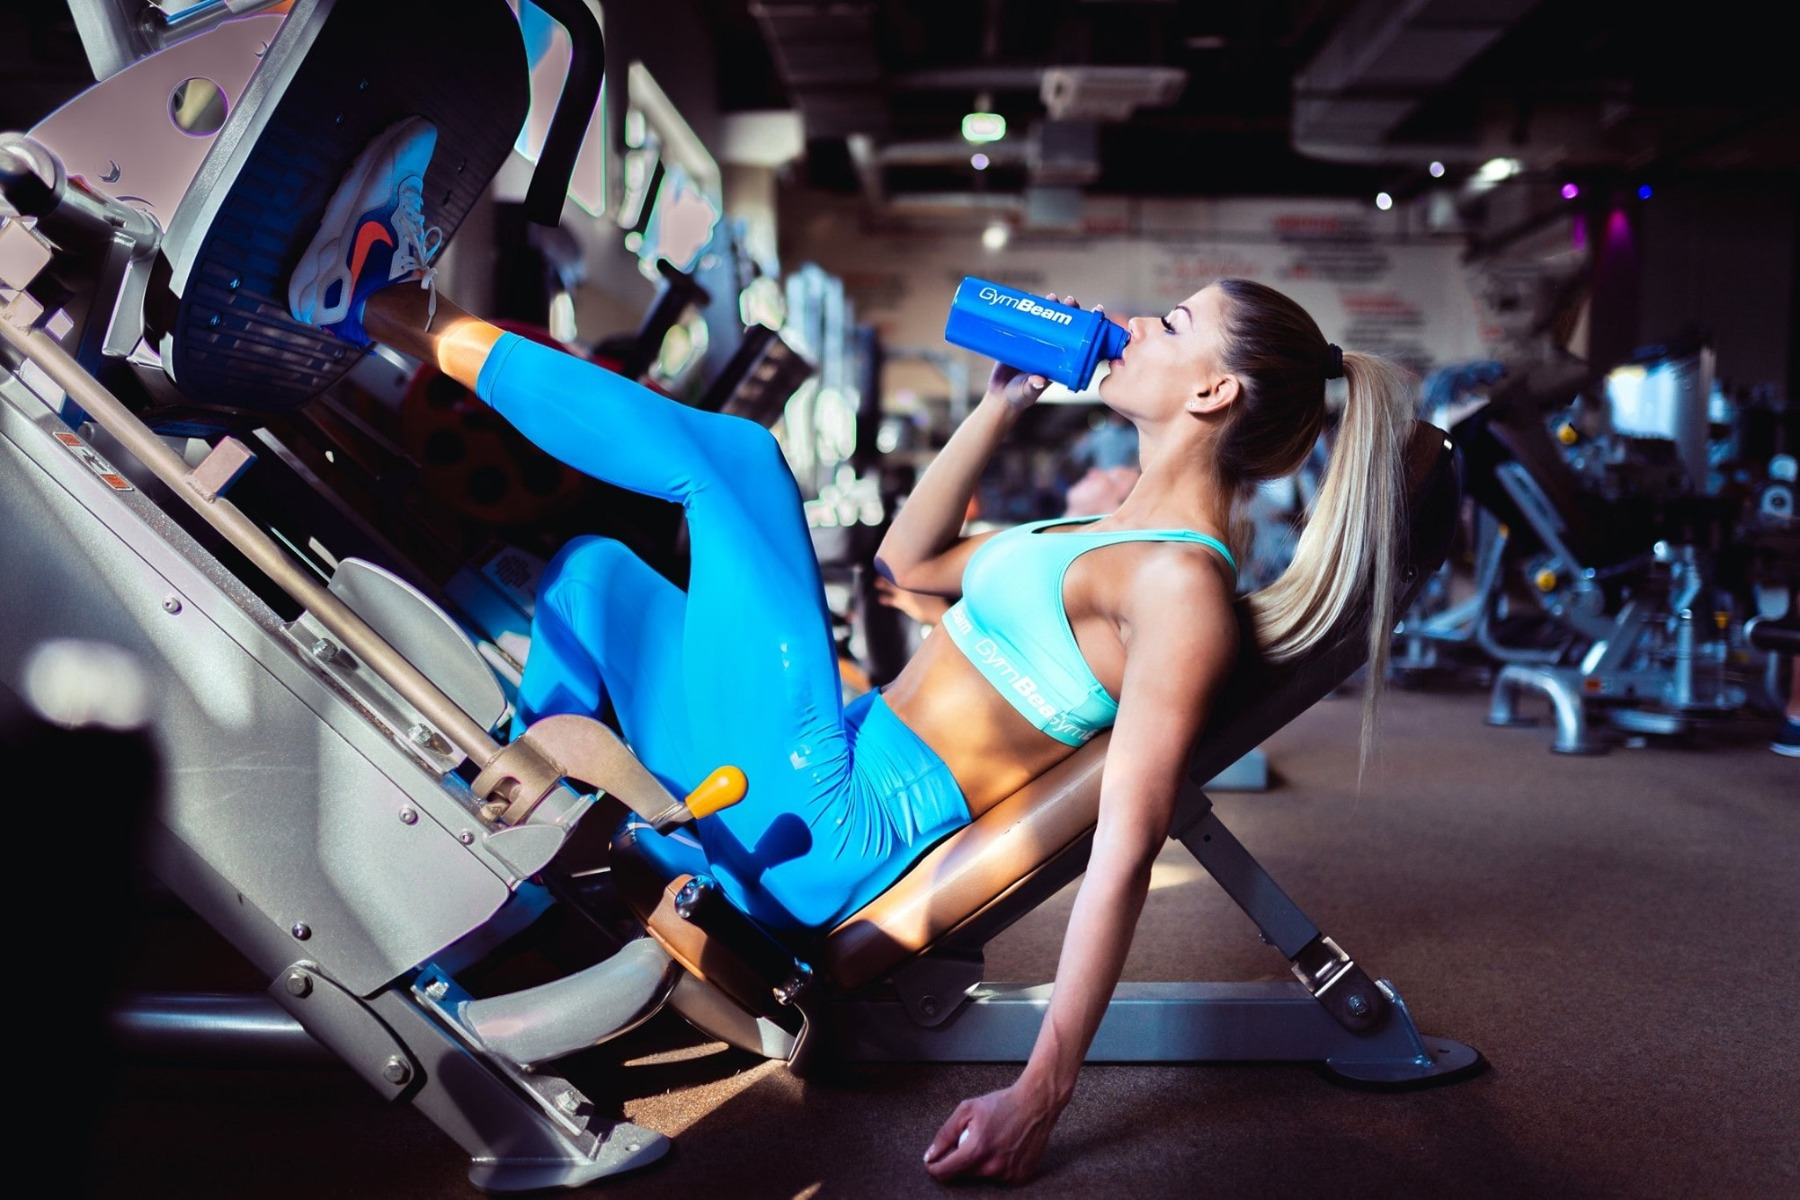 It is best to combine strength and cardio training